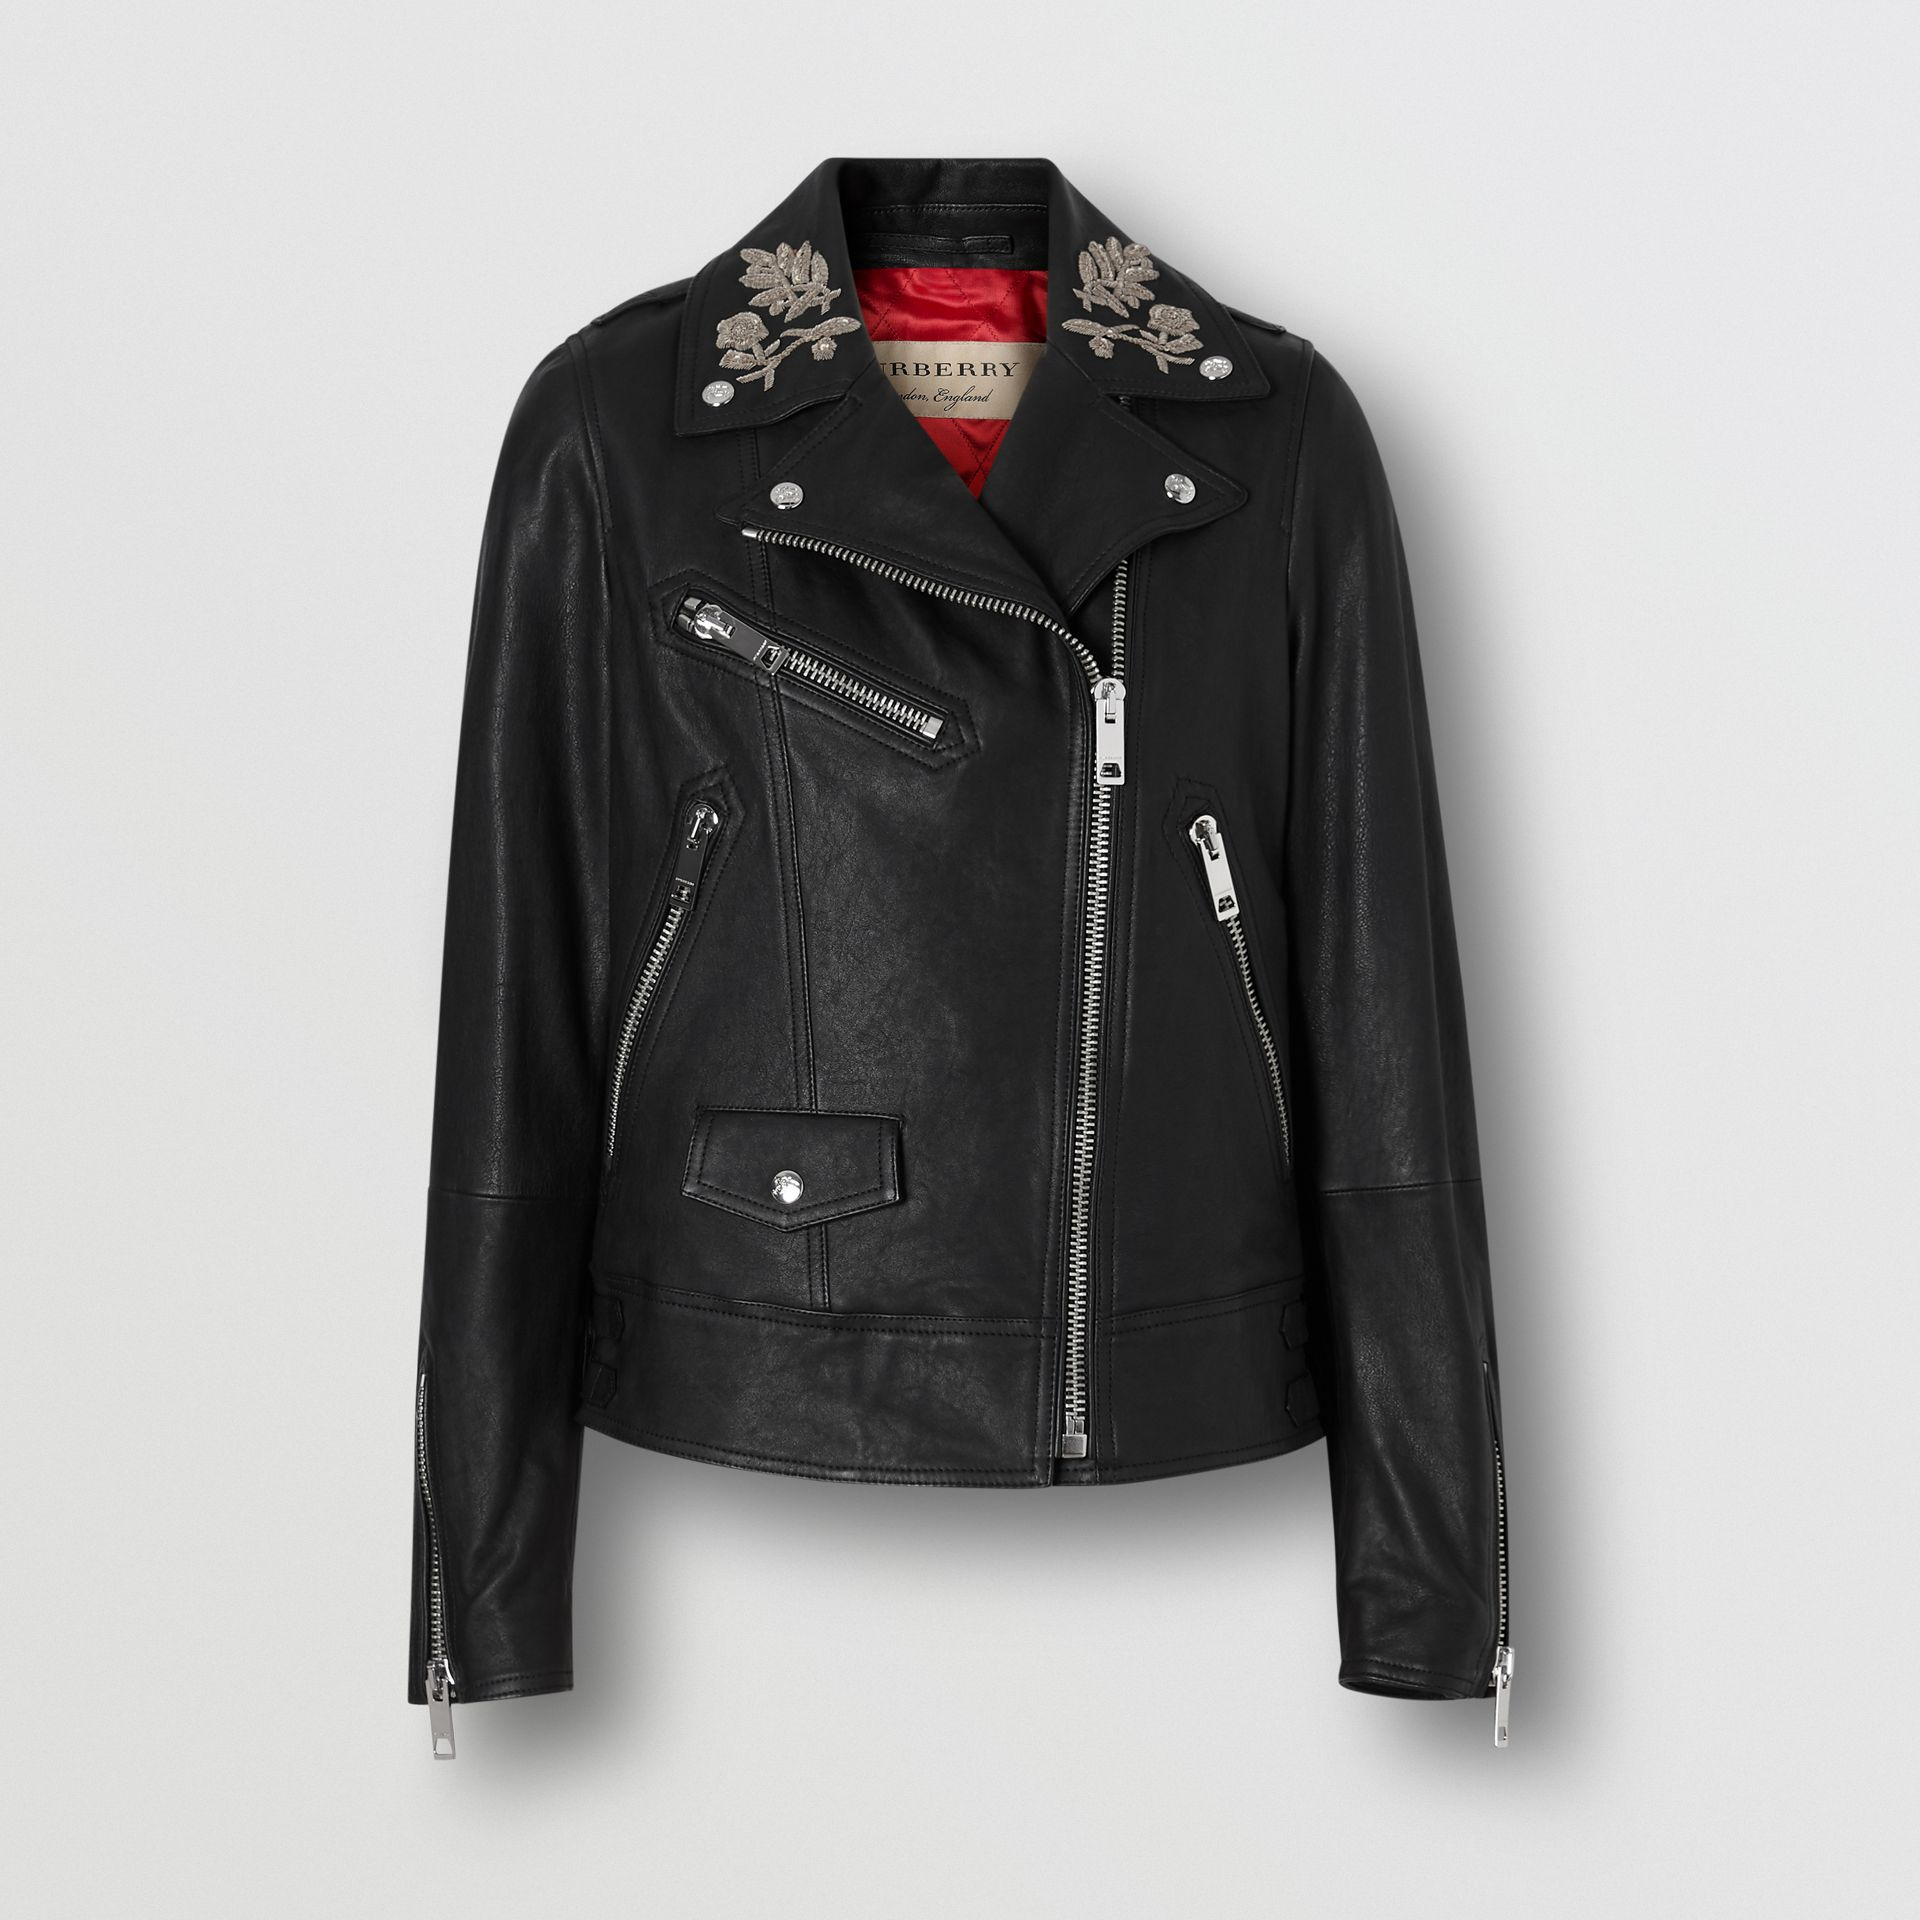 Bullion Floral Lambskin Biker Jacket in Black - Women | Burberry United States - gallery image 3